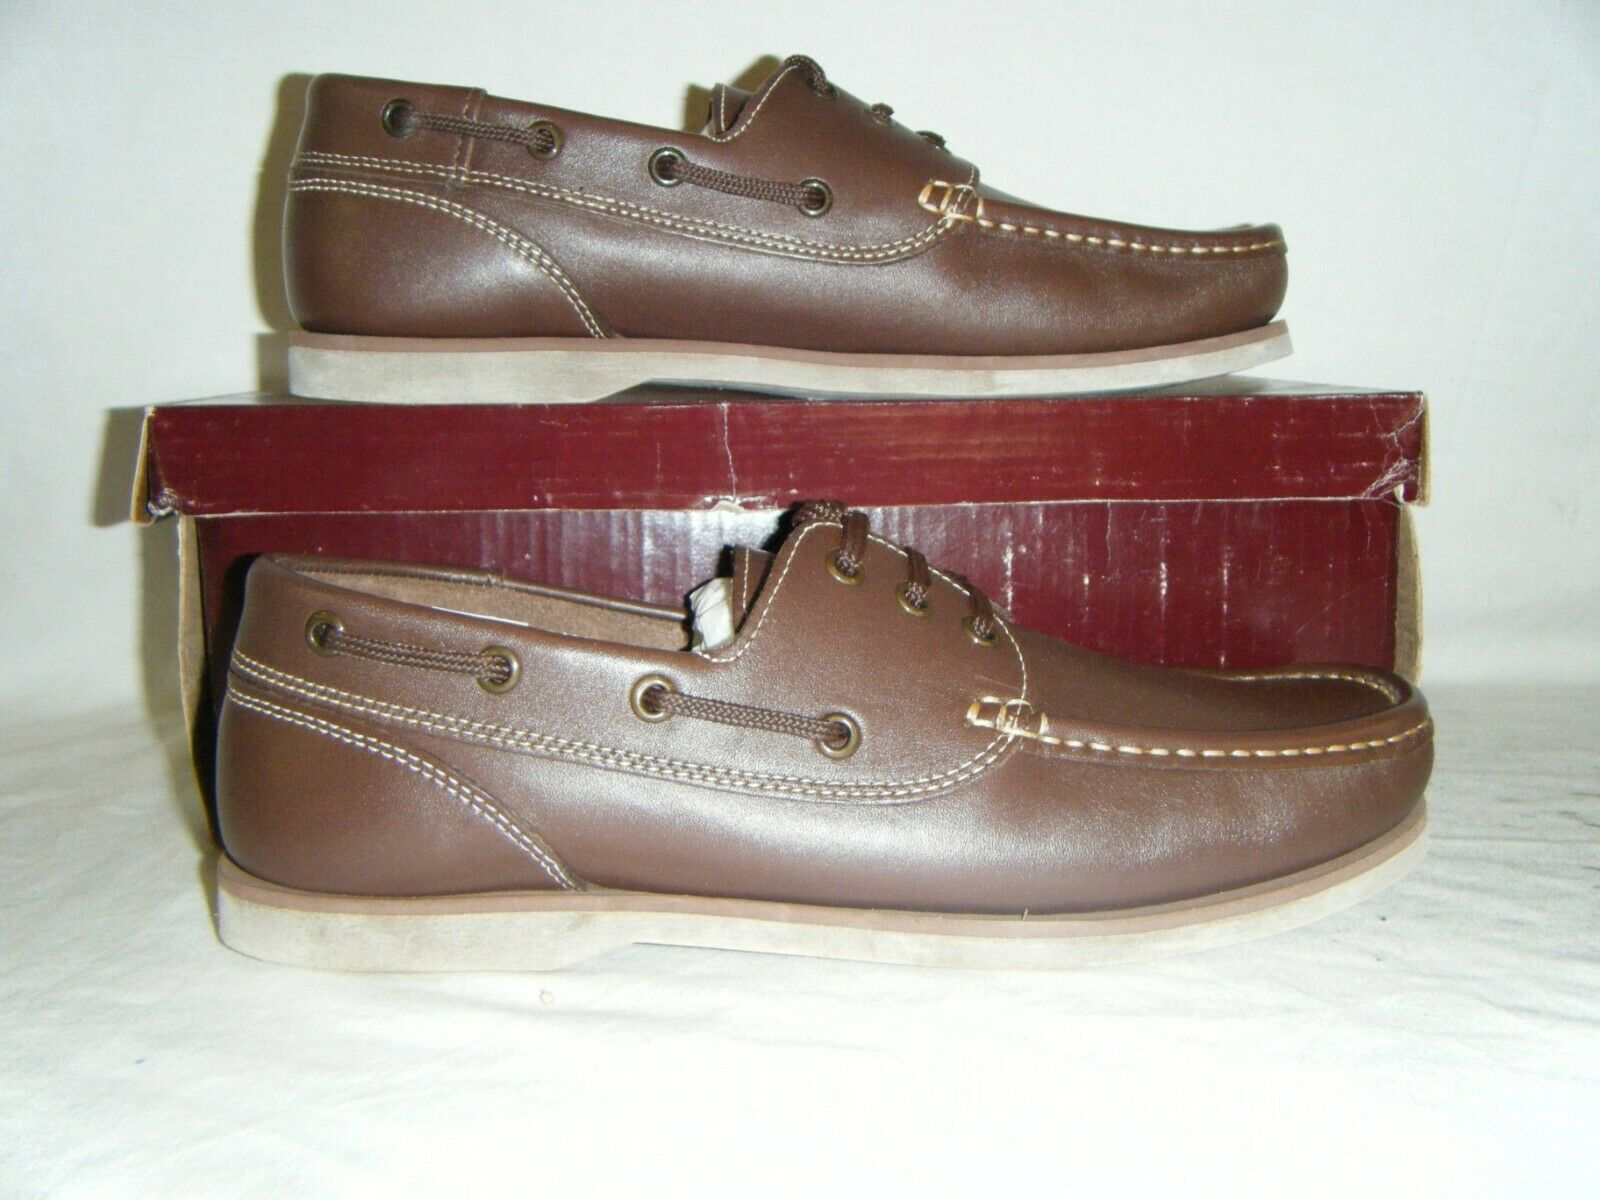 British Army Royal Navy Issue Military Leather Loafers Boat Deck shoes Size 7 41